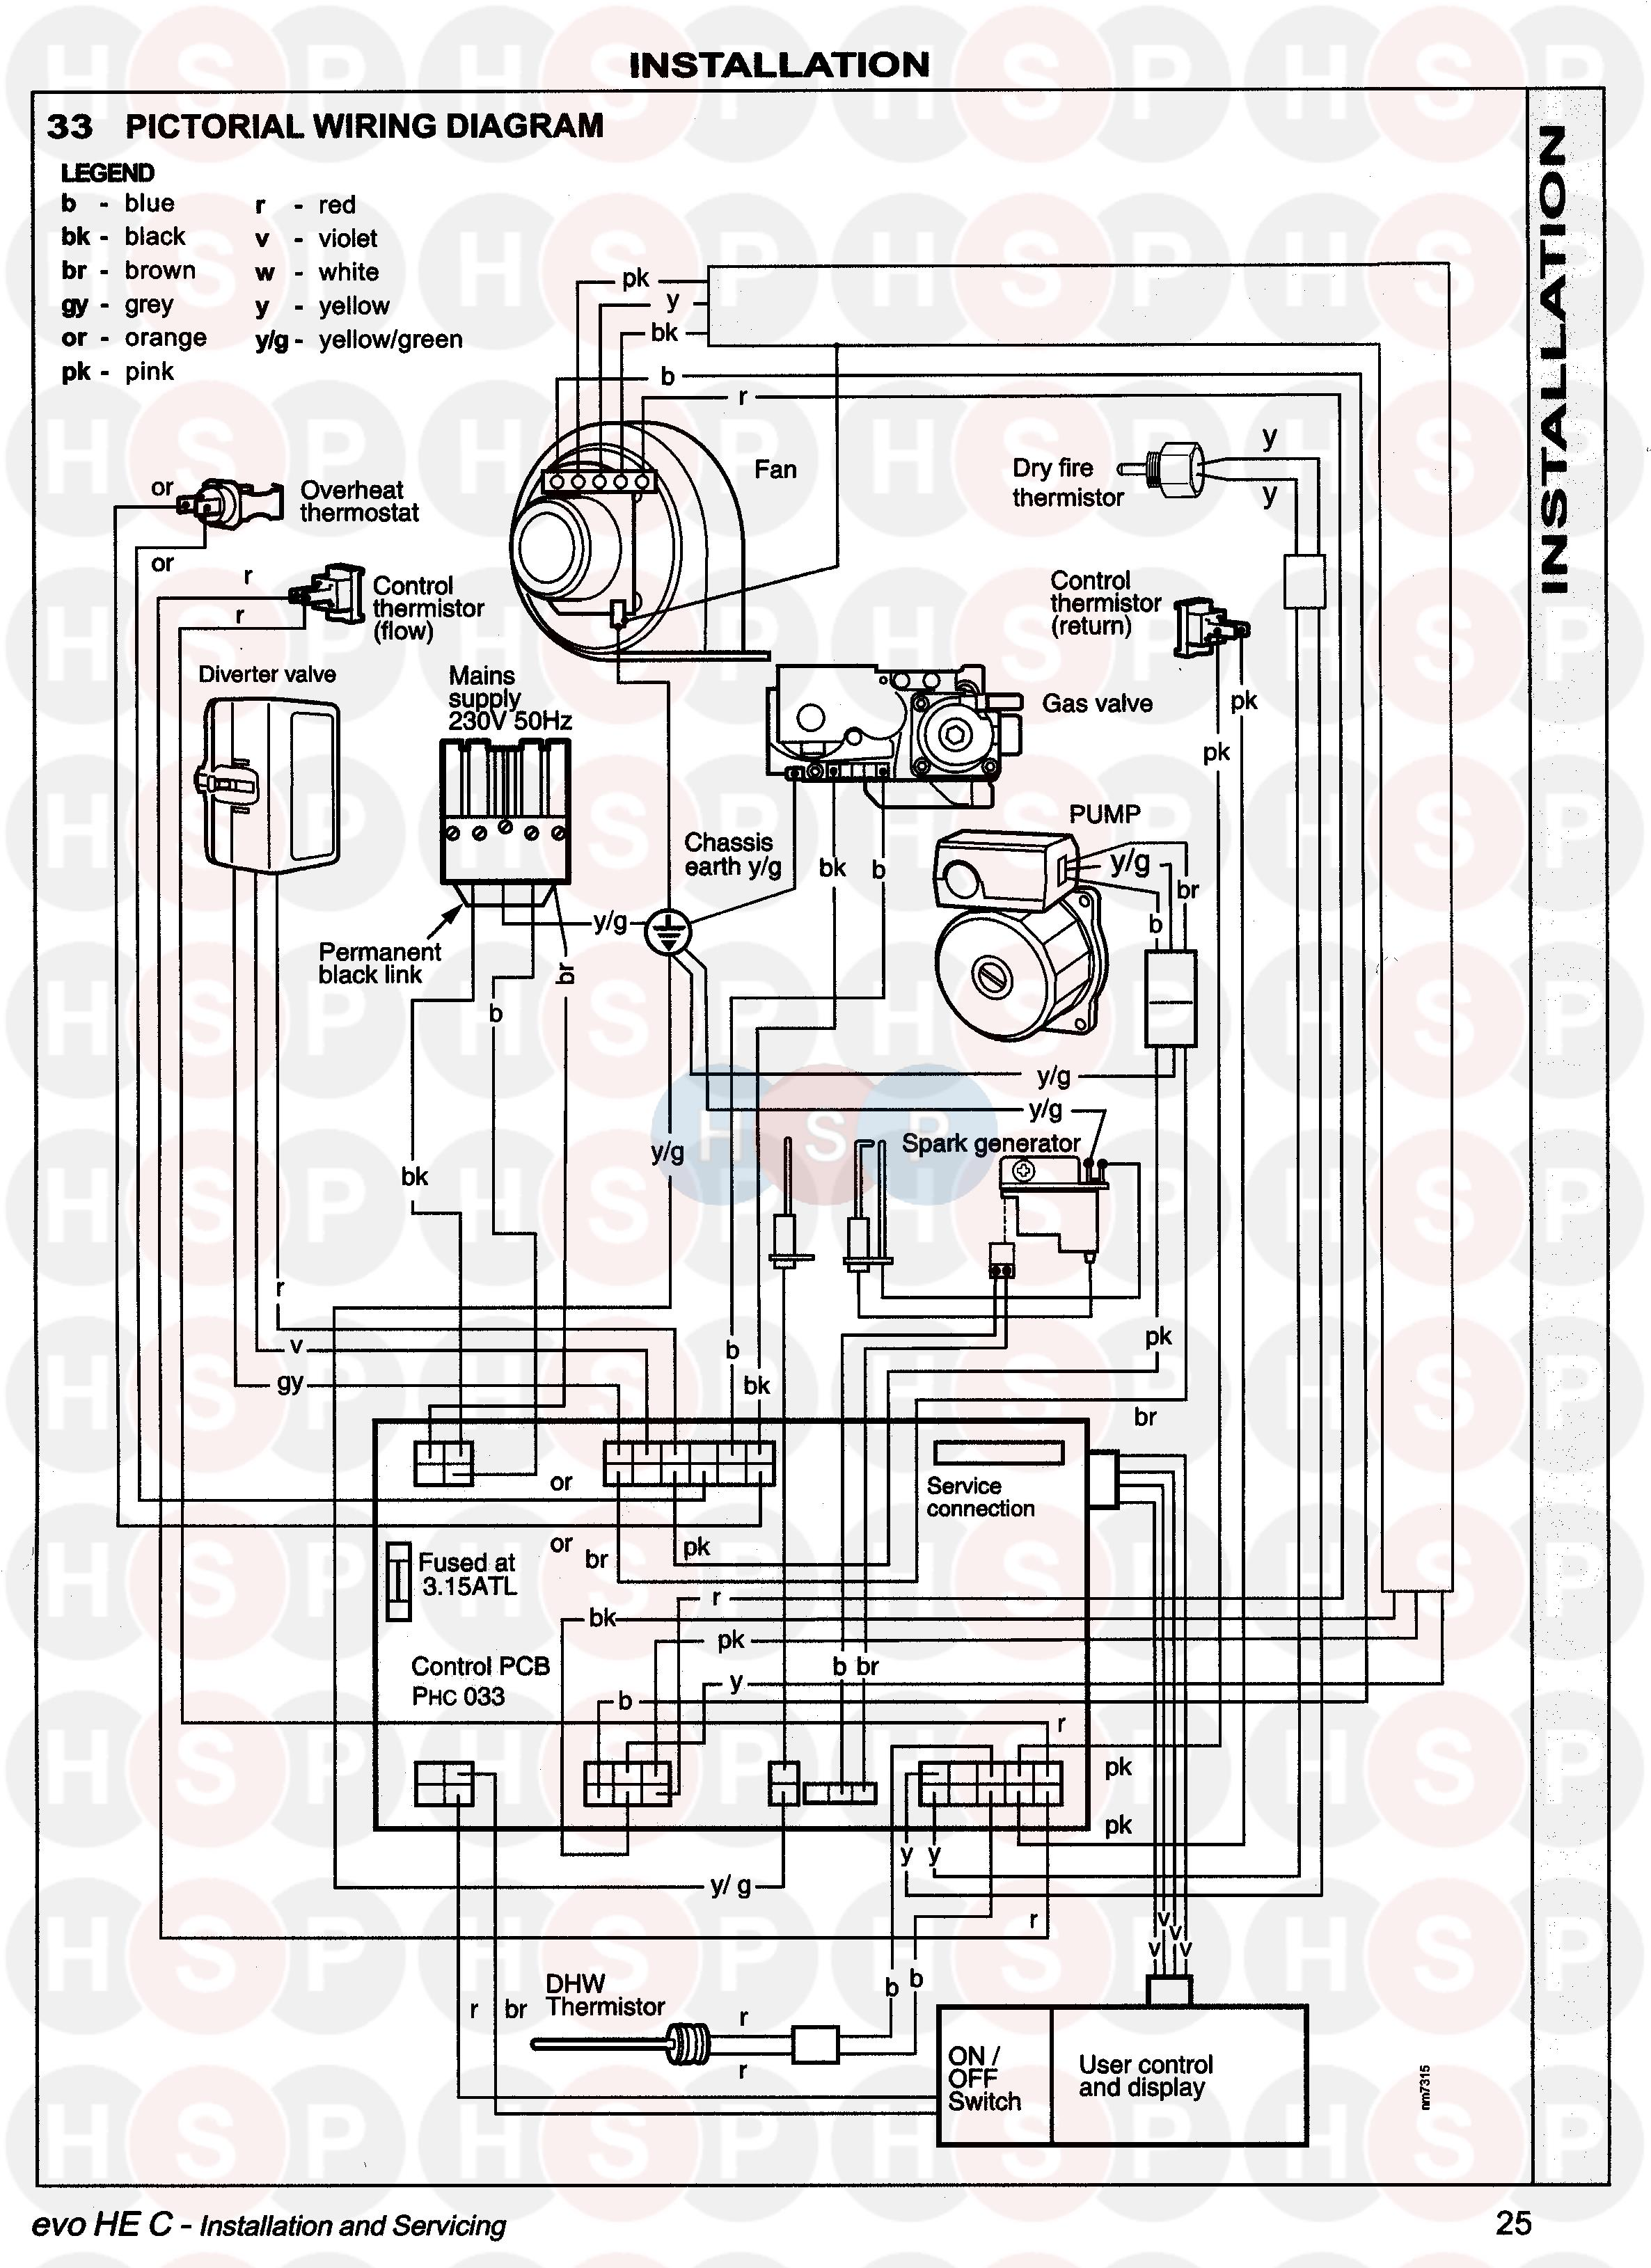 ideal evo he c22  30  wiring diagram 1  diagram